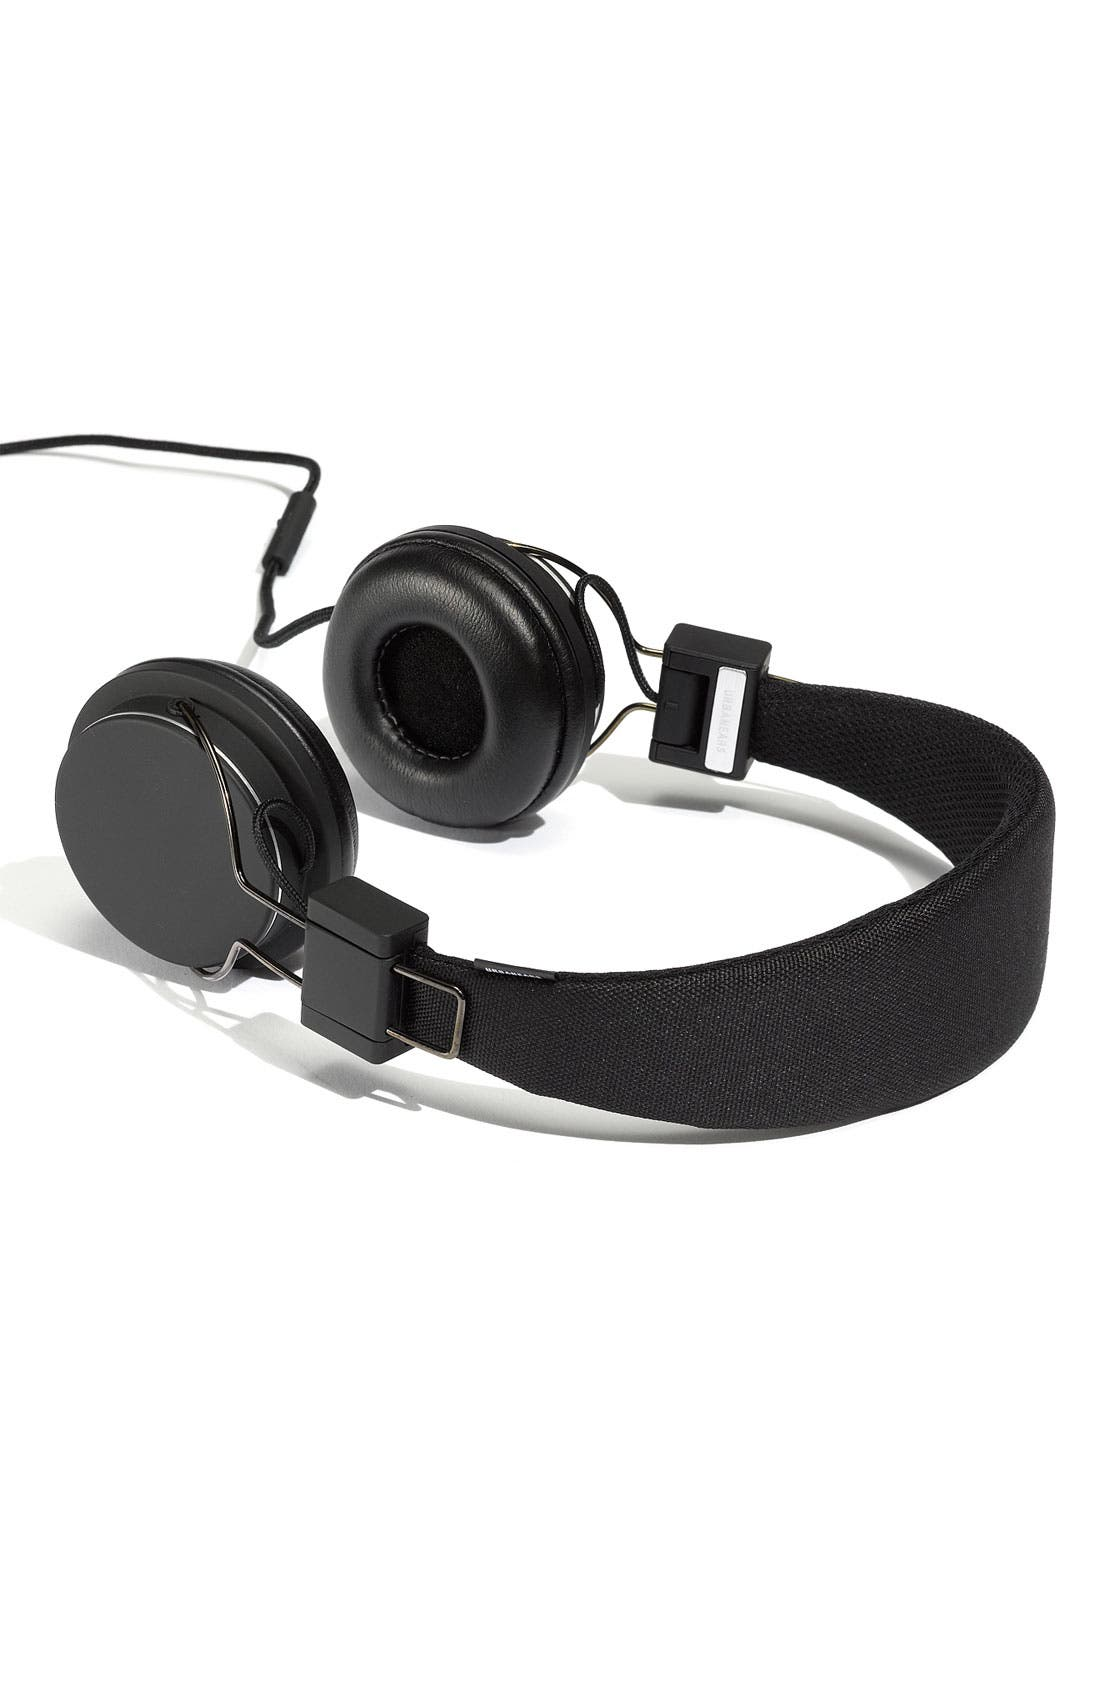 Alternate Image 1 Selected - Urbanears 'Plattan' Headphones